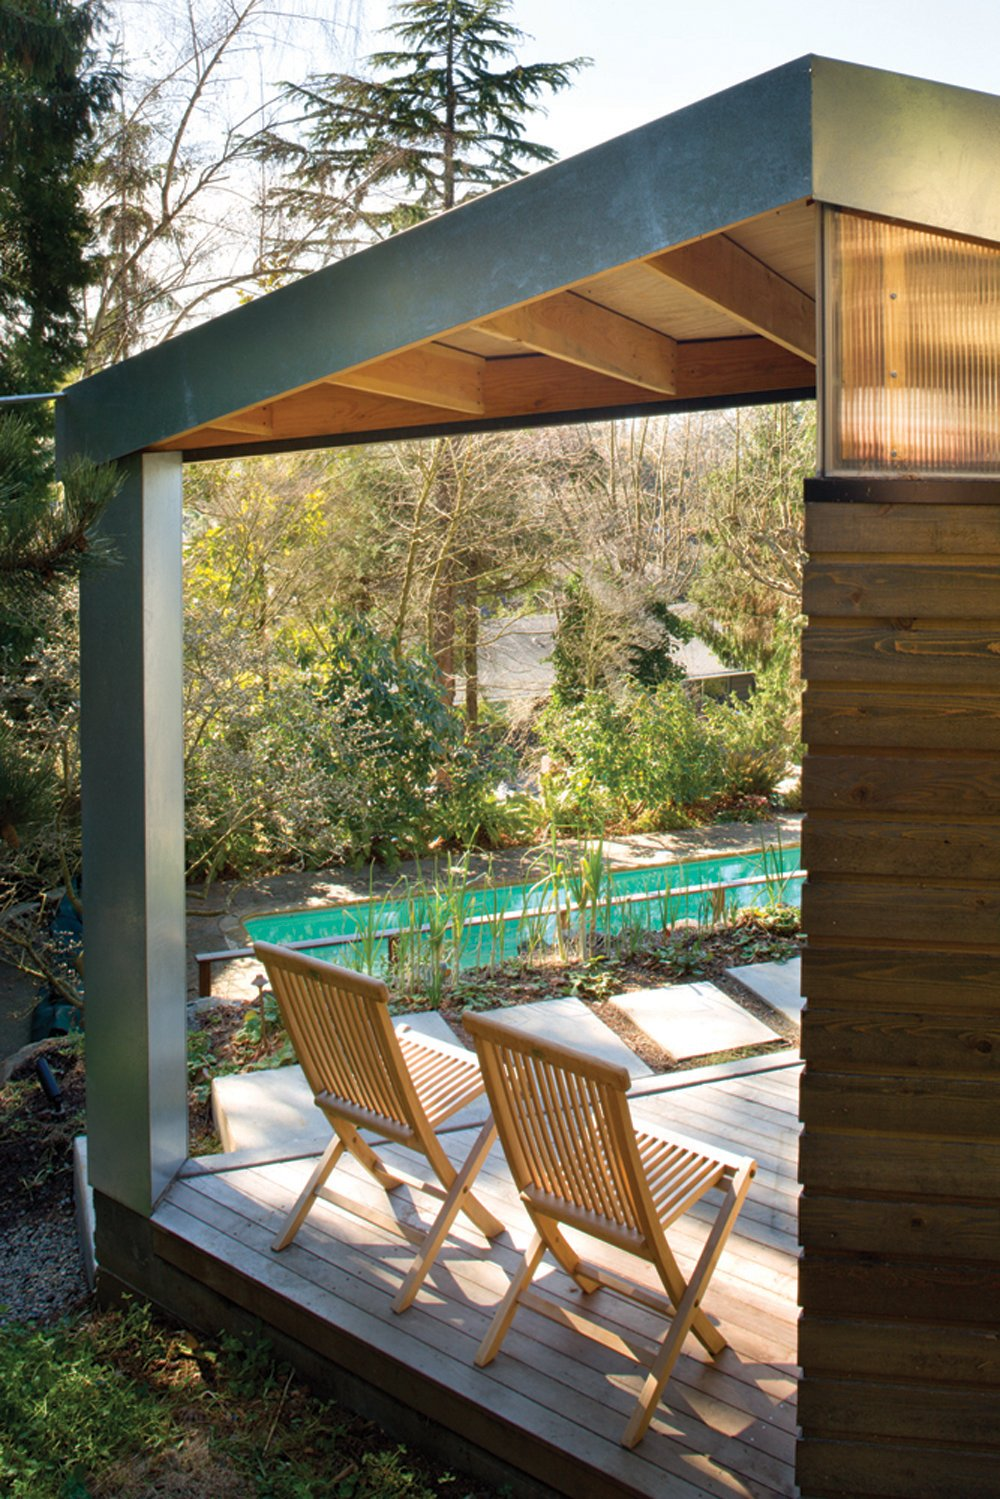 Outdoor and Wood Patio, Porch, Deck  Studio for a Writer by Robert Hutchison Architecture